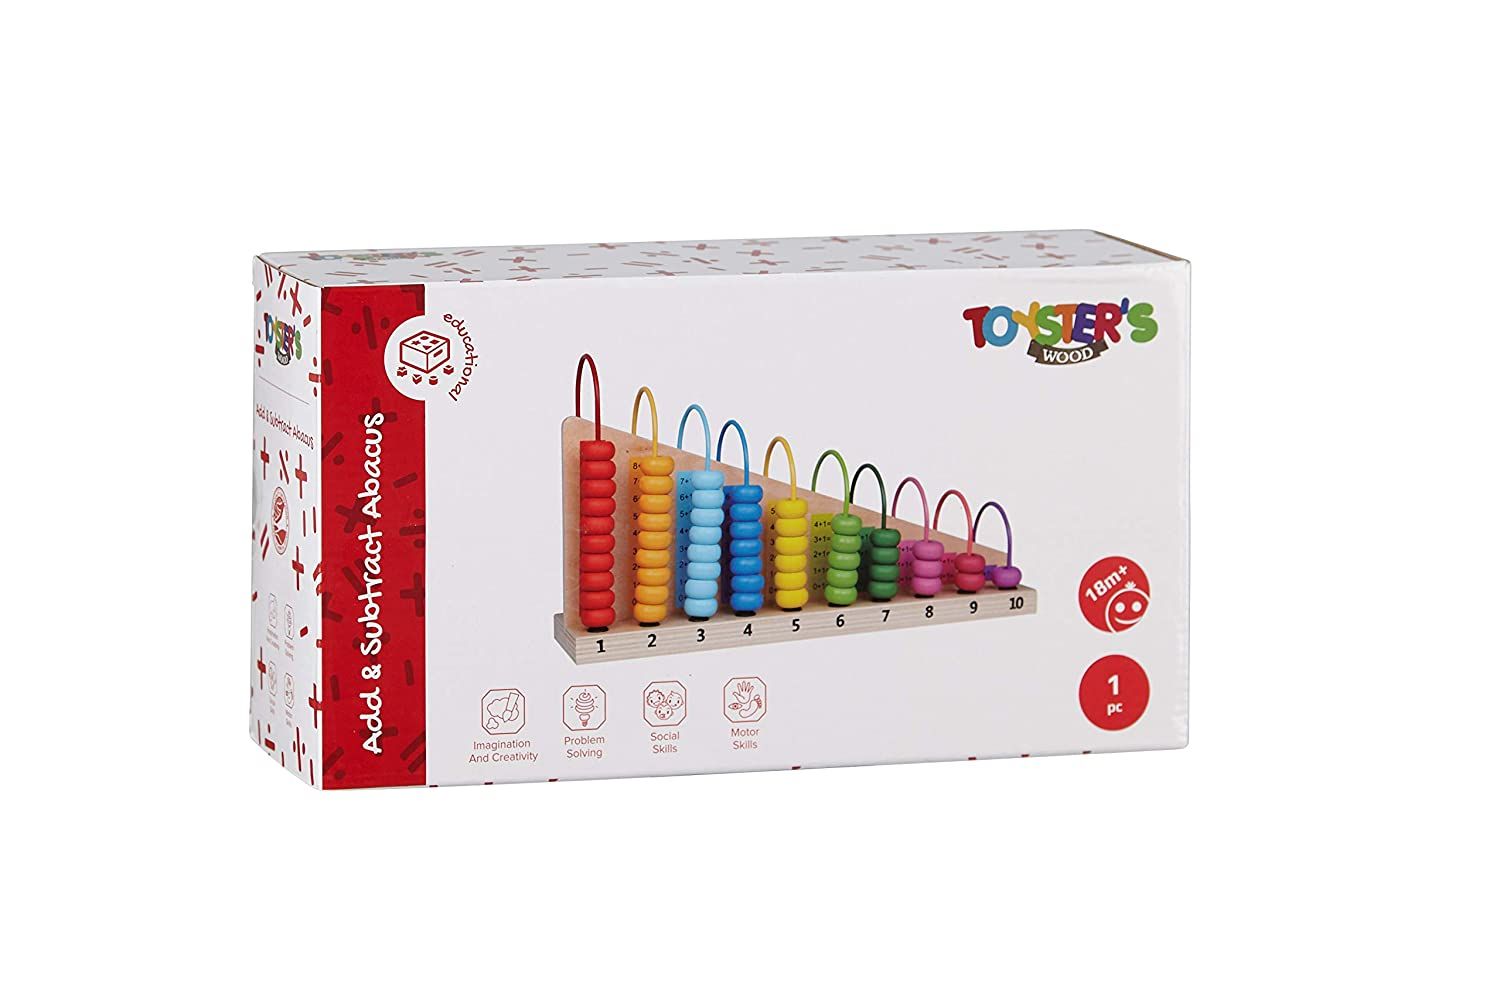 Colorful Educational Toys 55 Colorful Beads and Wooden Mathematical Counting Frame   ED670 Math Learning Games for Kids TOYSTERS Add and Subtract Abacus Toy